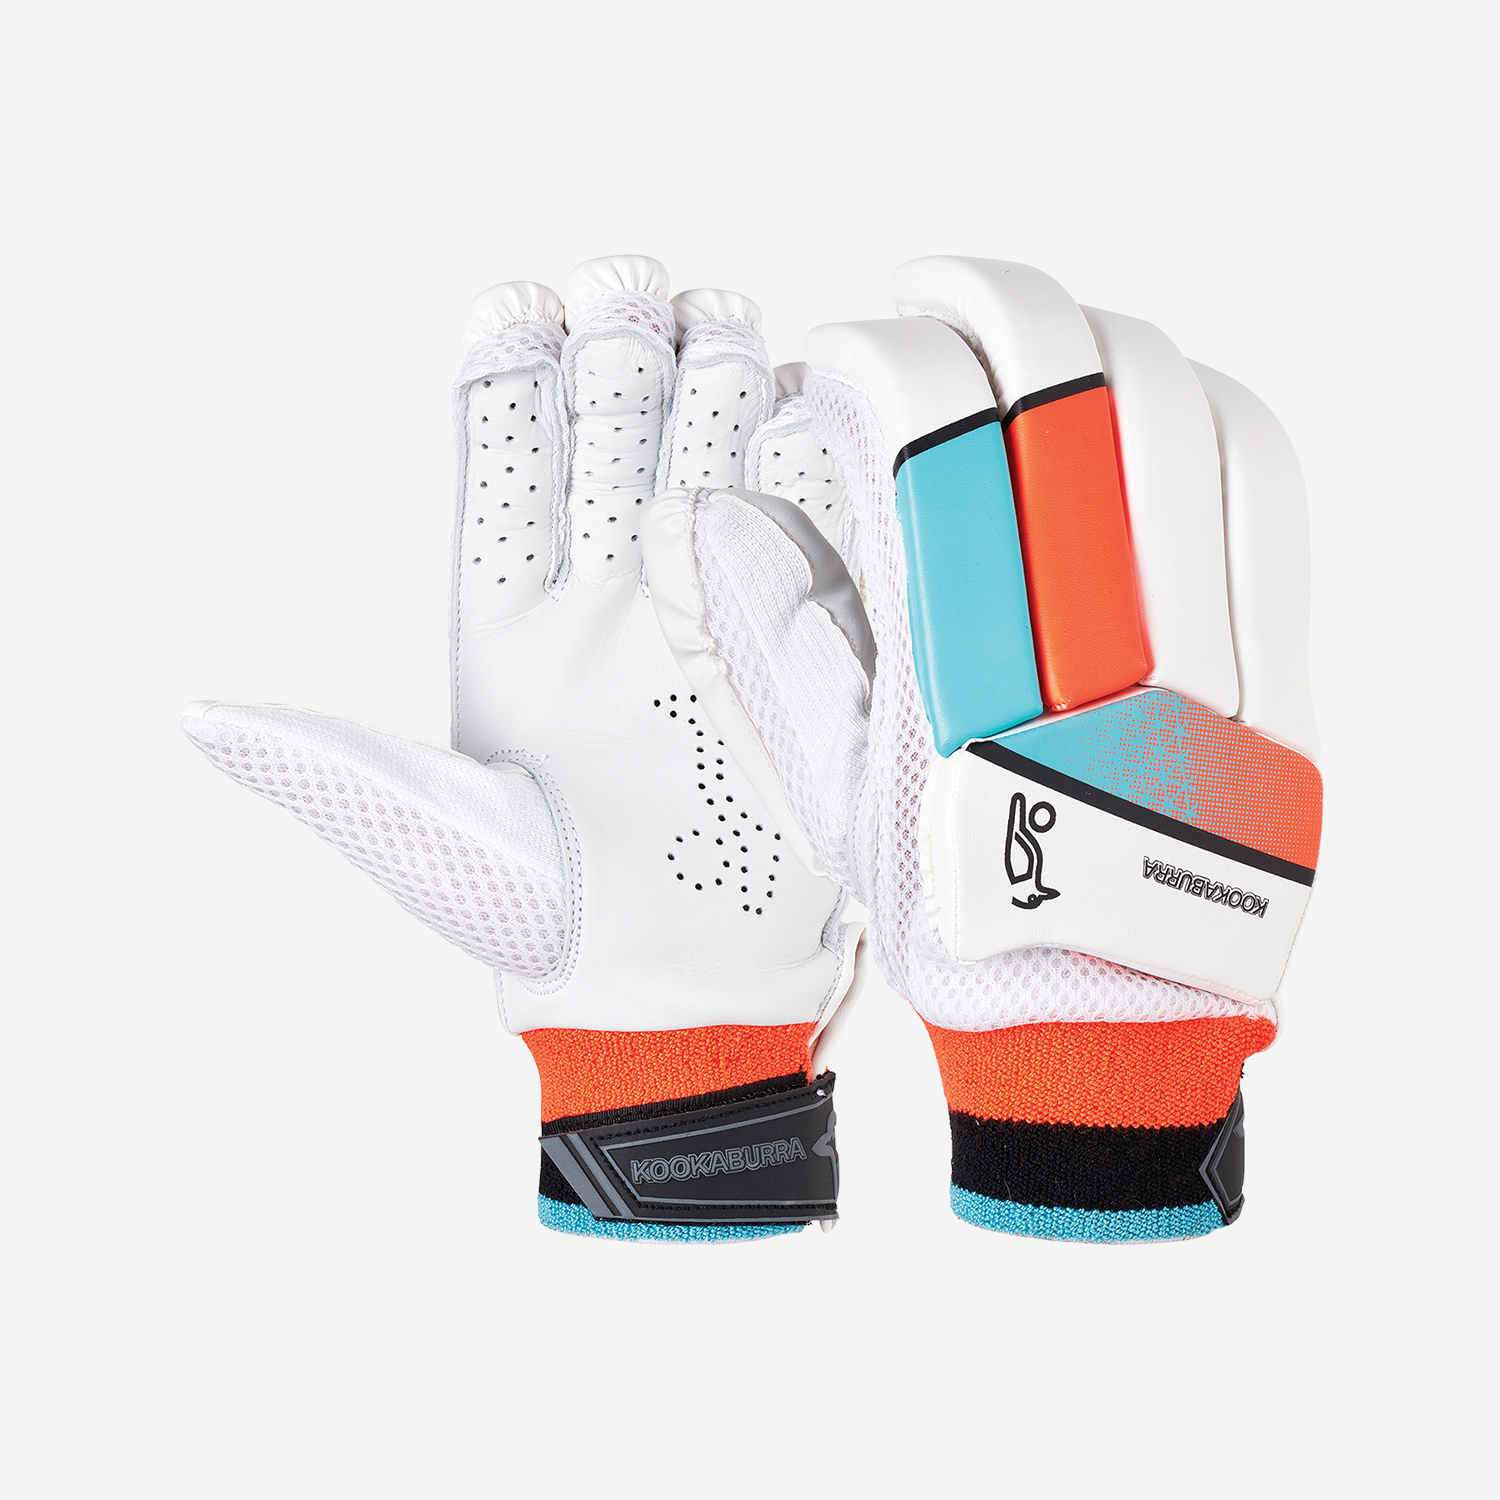 Rapid Pro 6.0 Batting Gloves